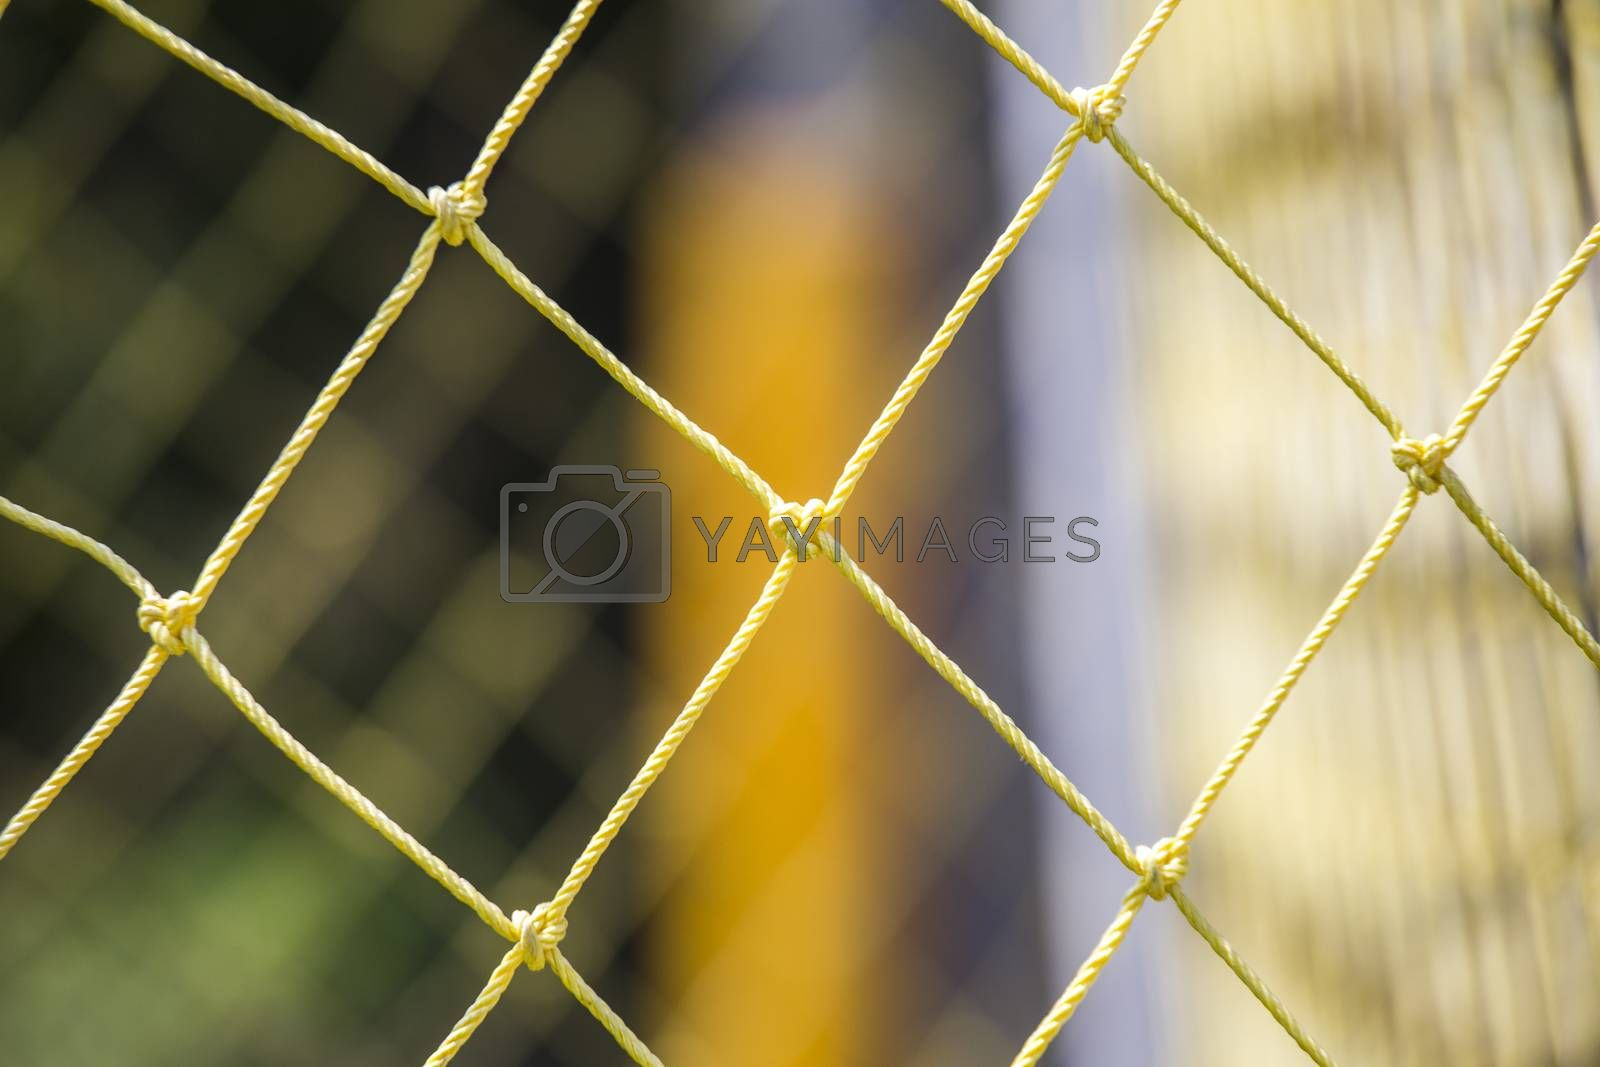 Soccer goal net with blurry background